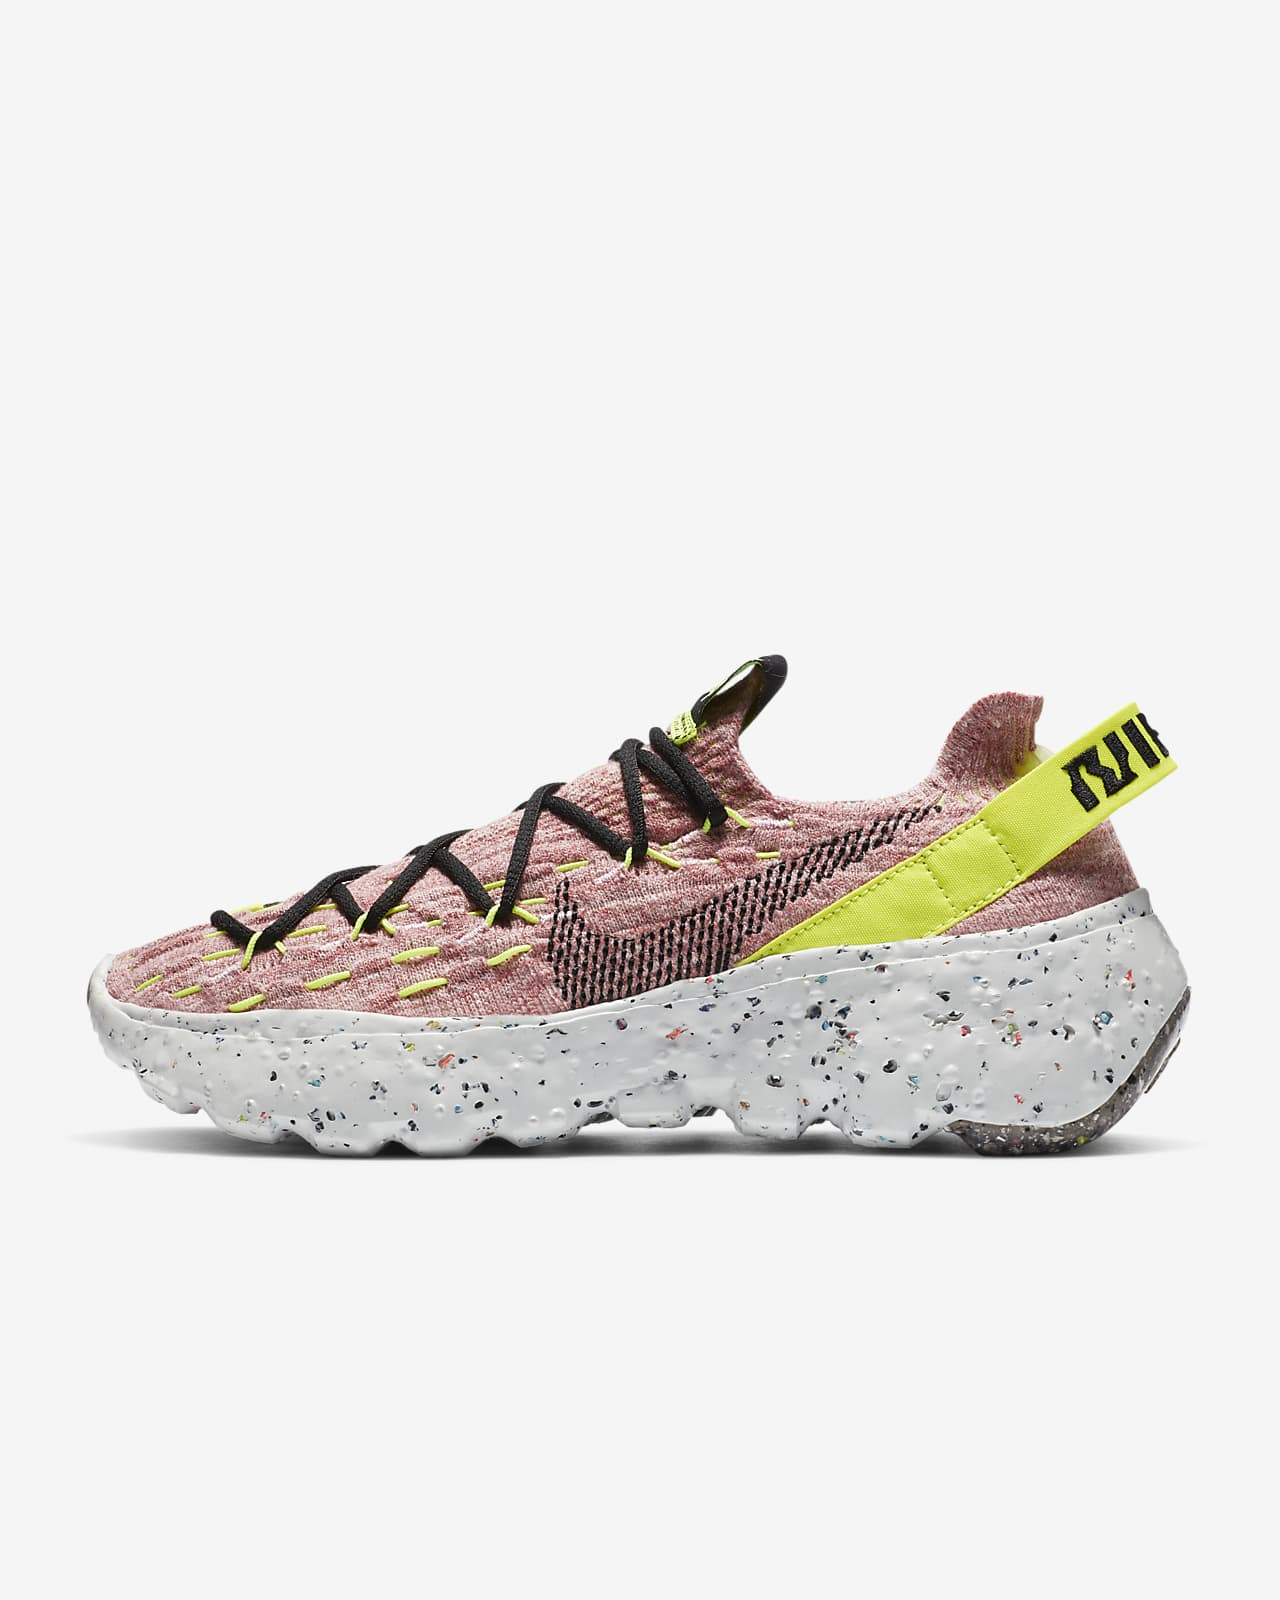 Chaussure Nike Space Hippie 04 pour Femme